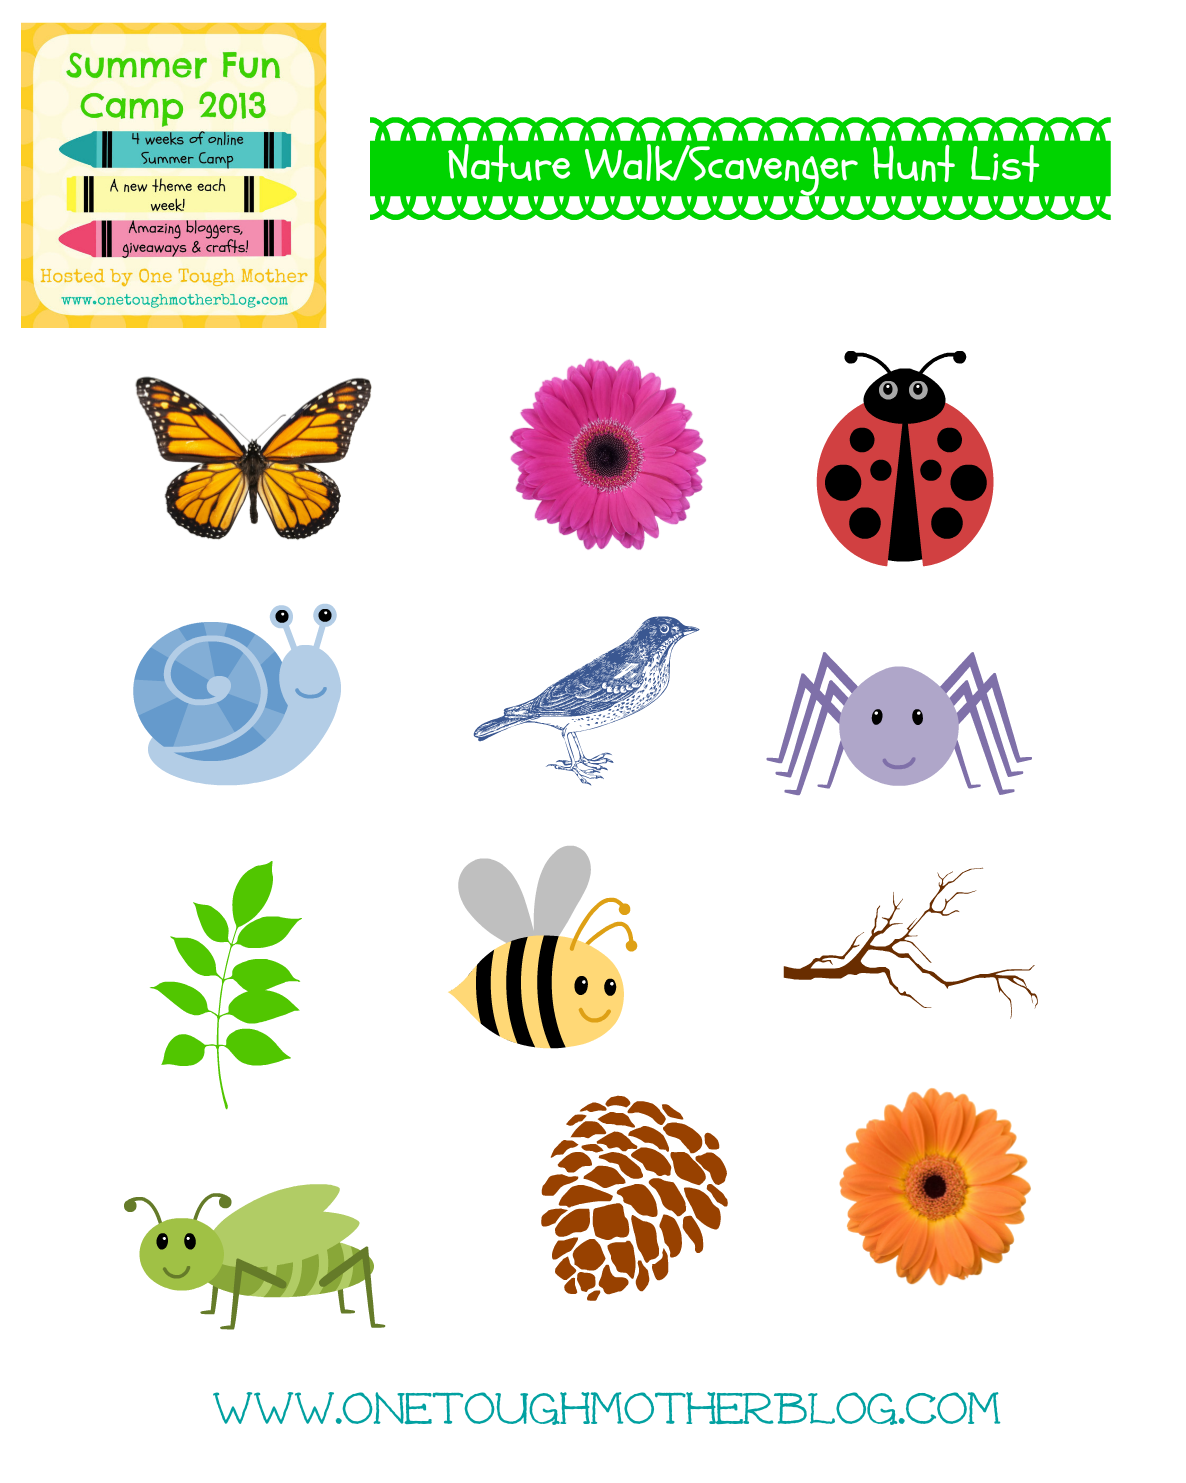 Scavenger Hunt Printable List With Images